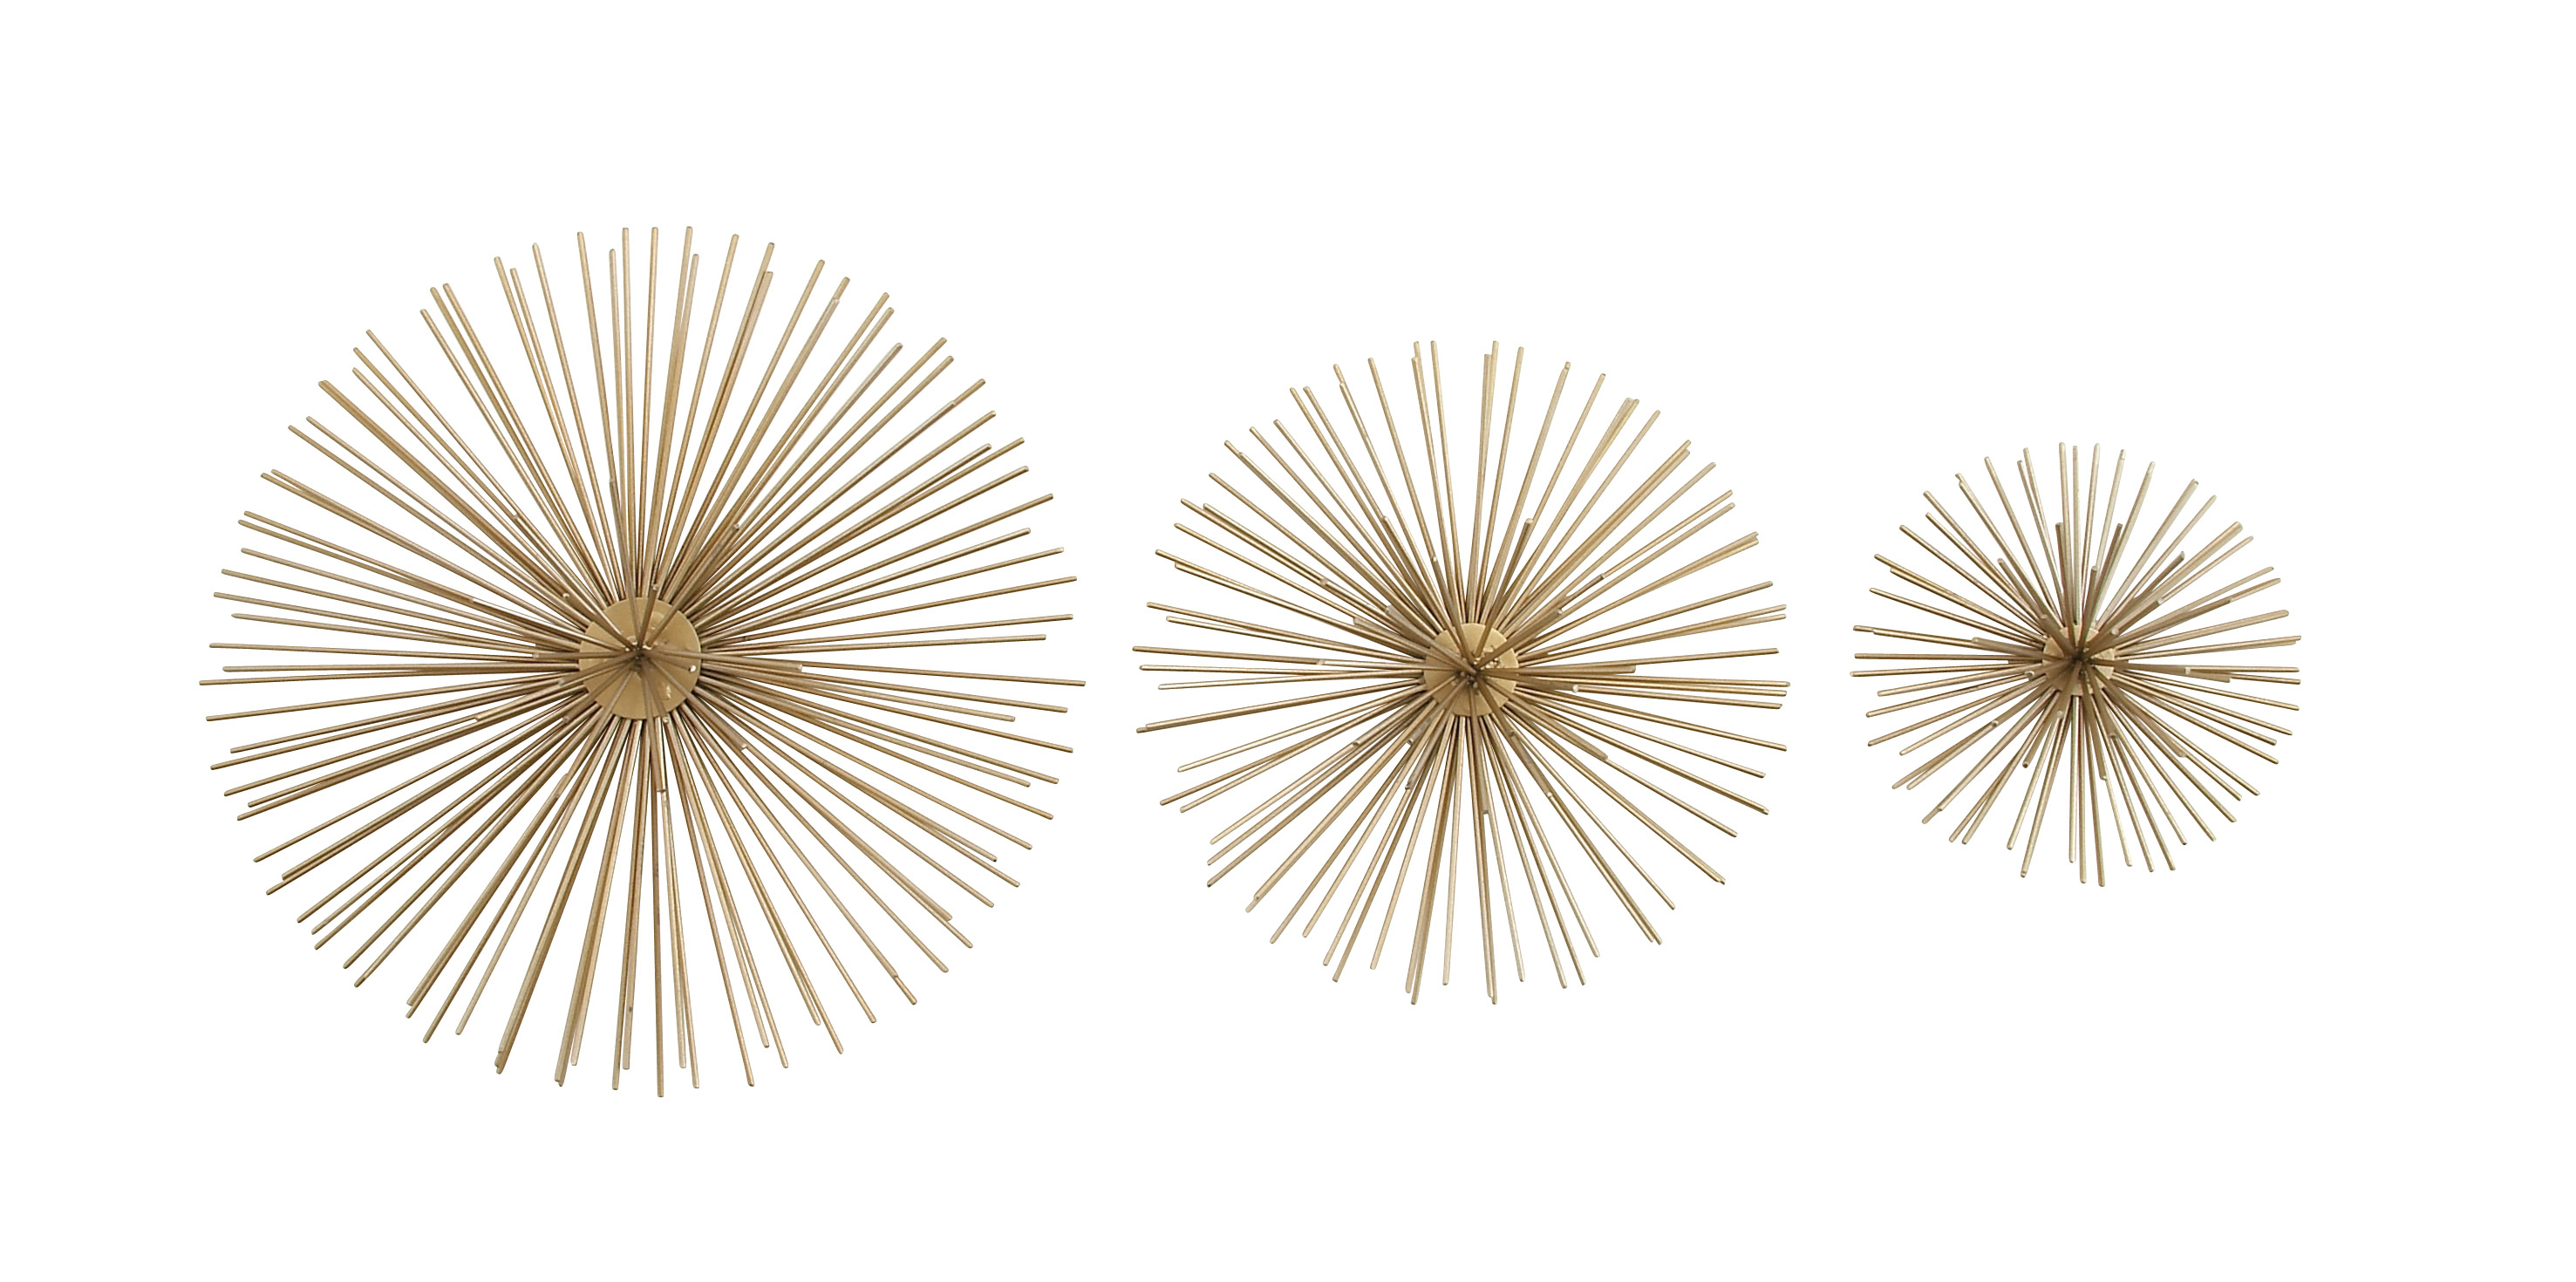 Decmode Metallic Gold Starburst Modern Metal Wall Décor | Set Of 3 Regarding Set Of 3 Contemporary 6, 9, And 11 Inch Gold Tin Starburst Sculptures (View 5 of 30)